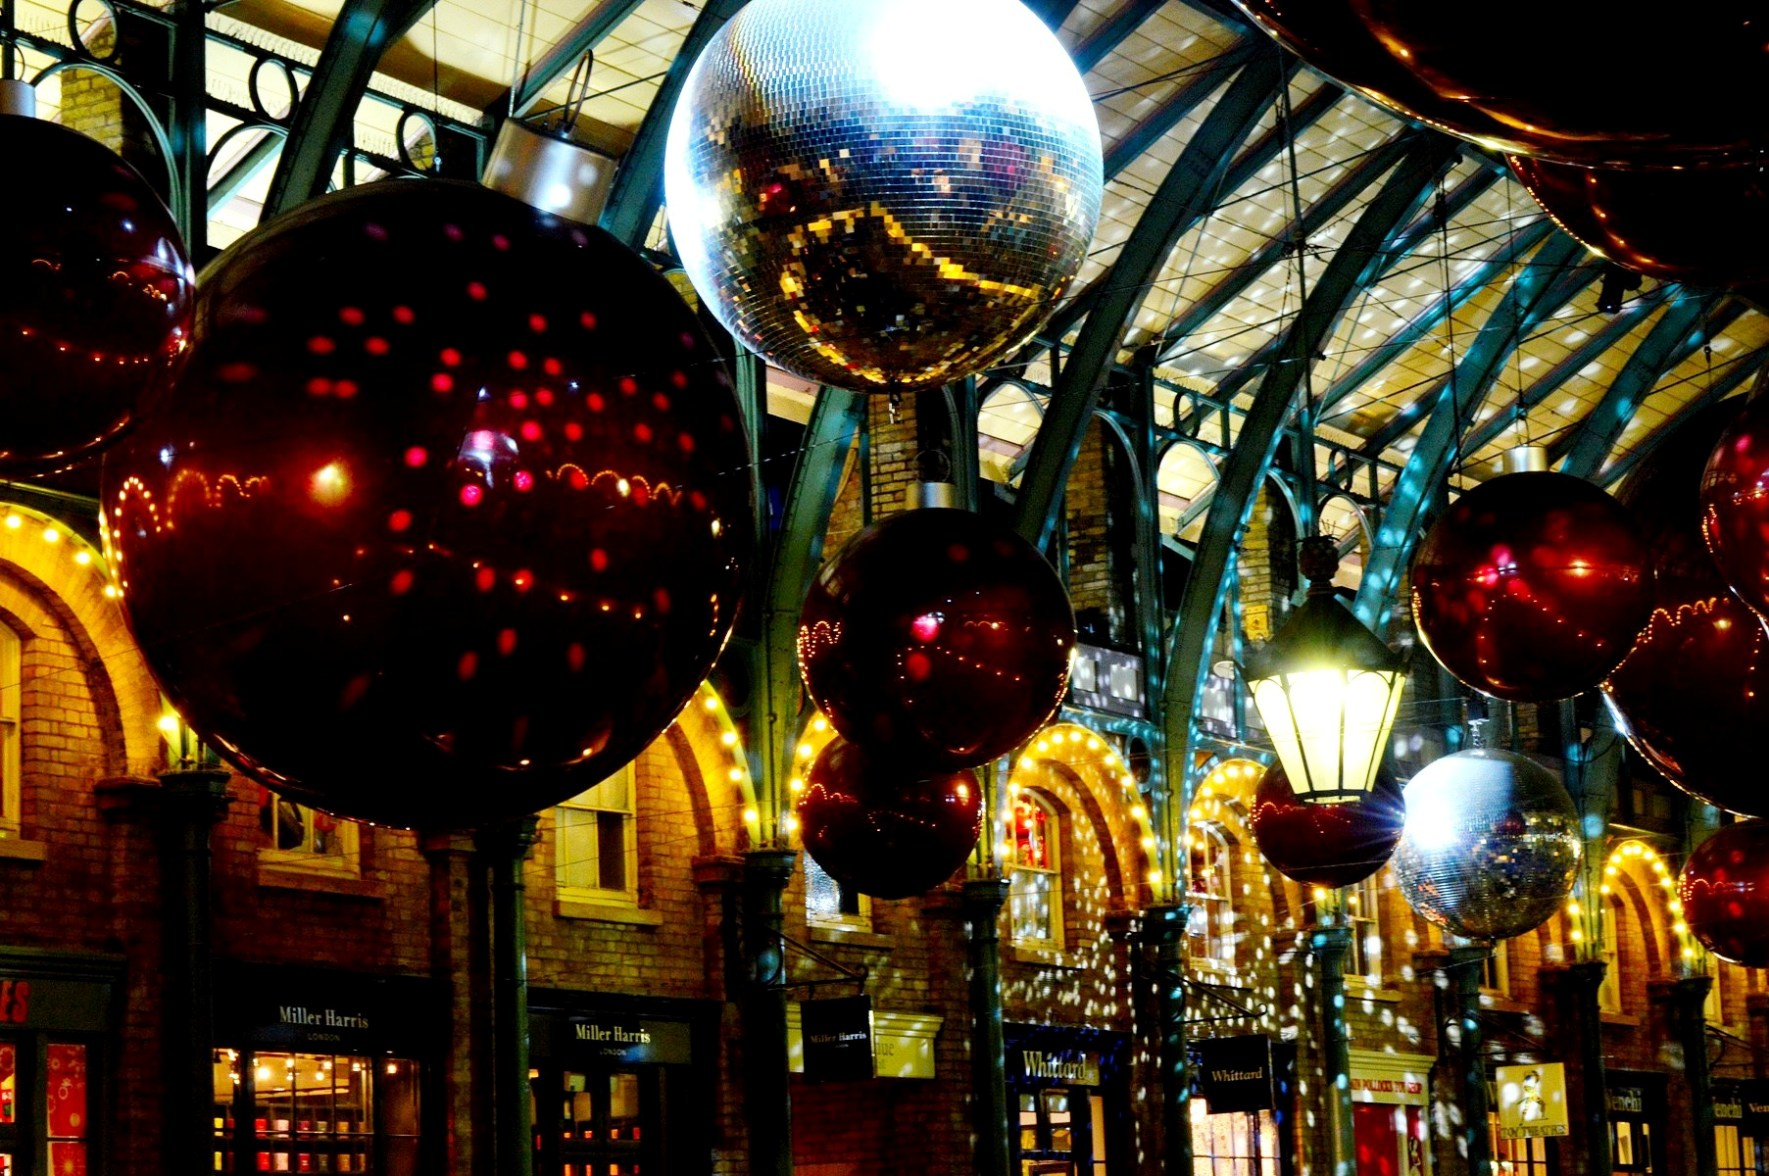 Covent Garden Xmas Decorations .